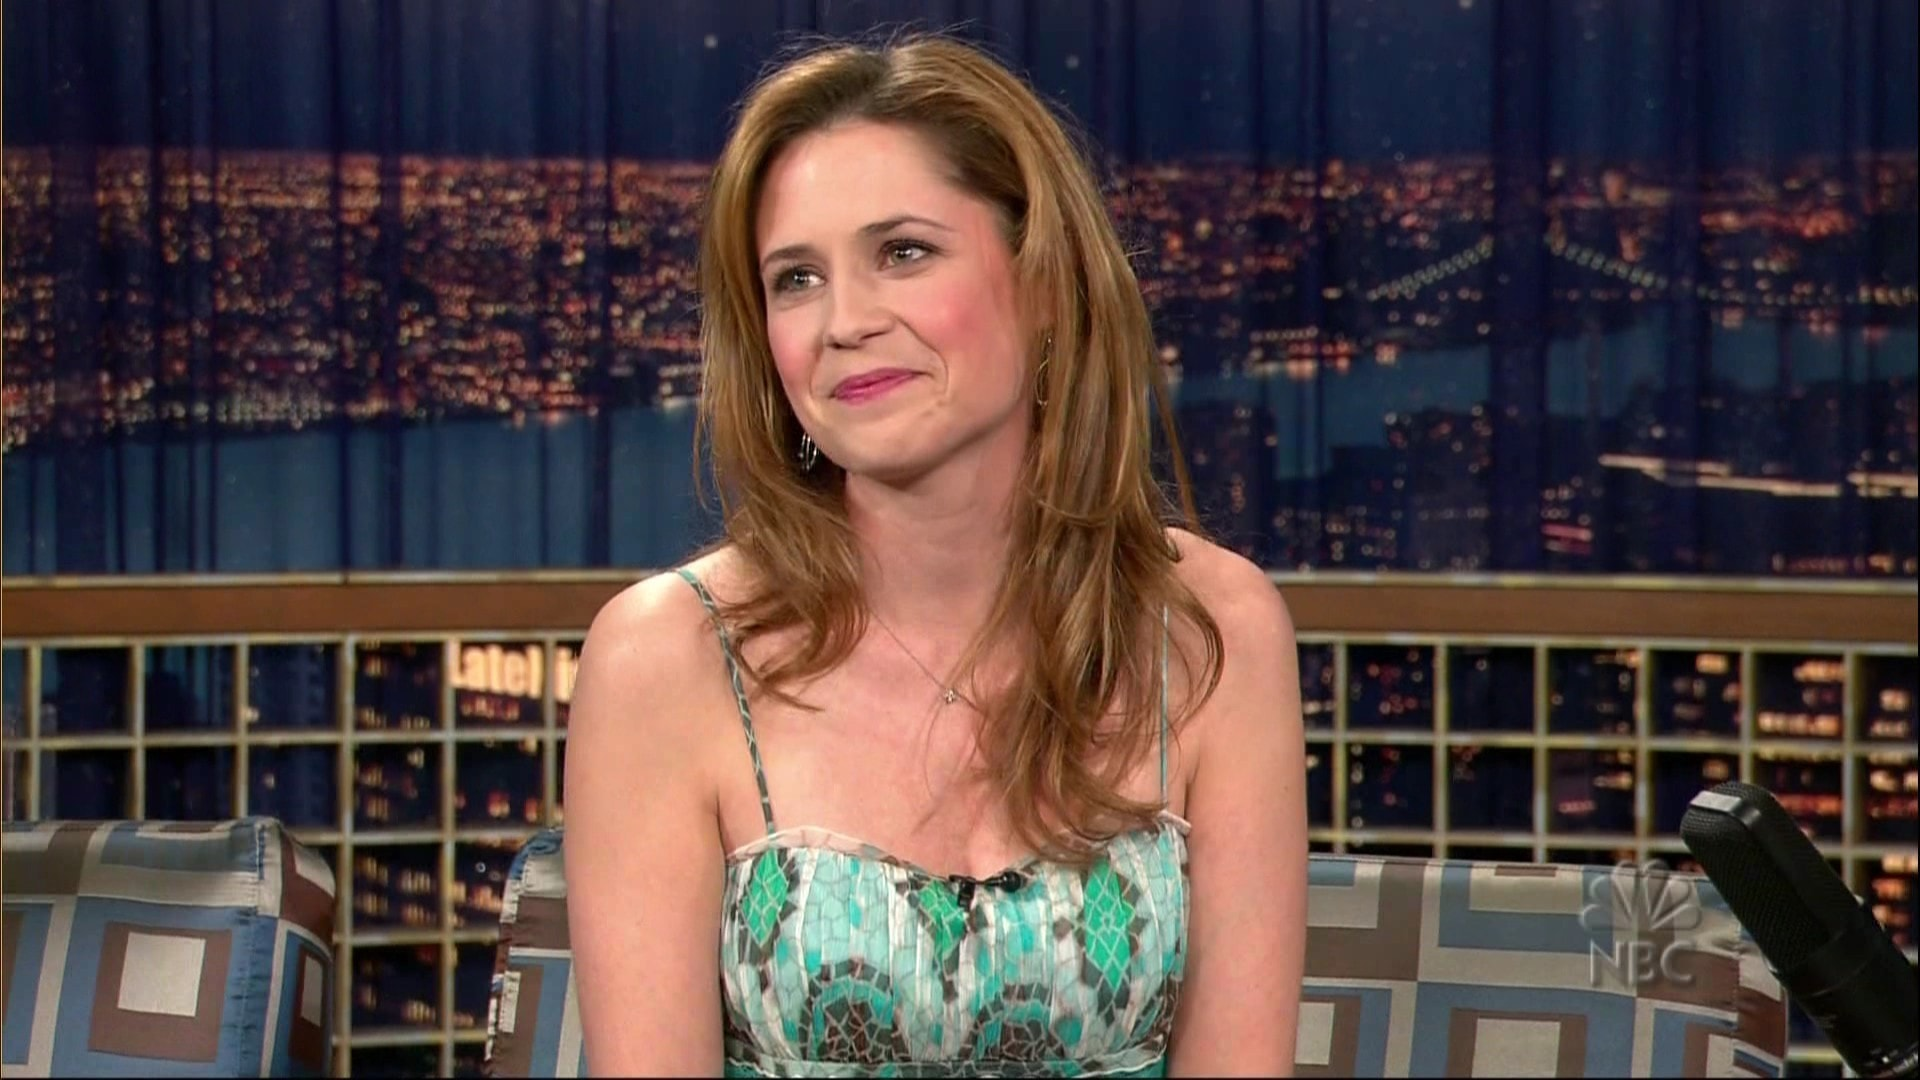 Jenna Fischer Download